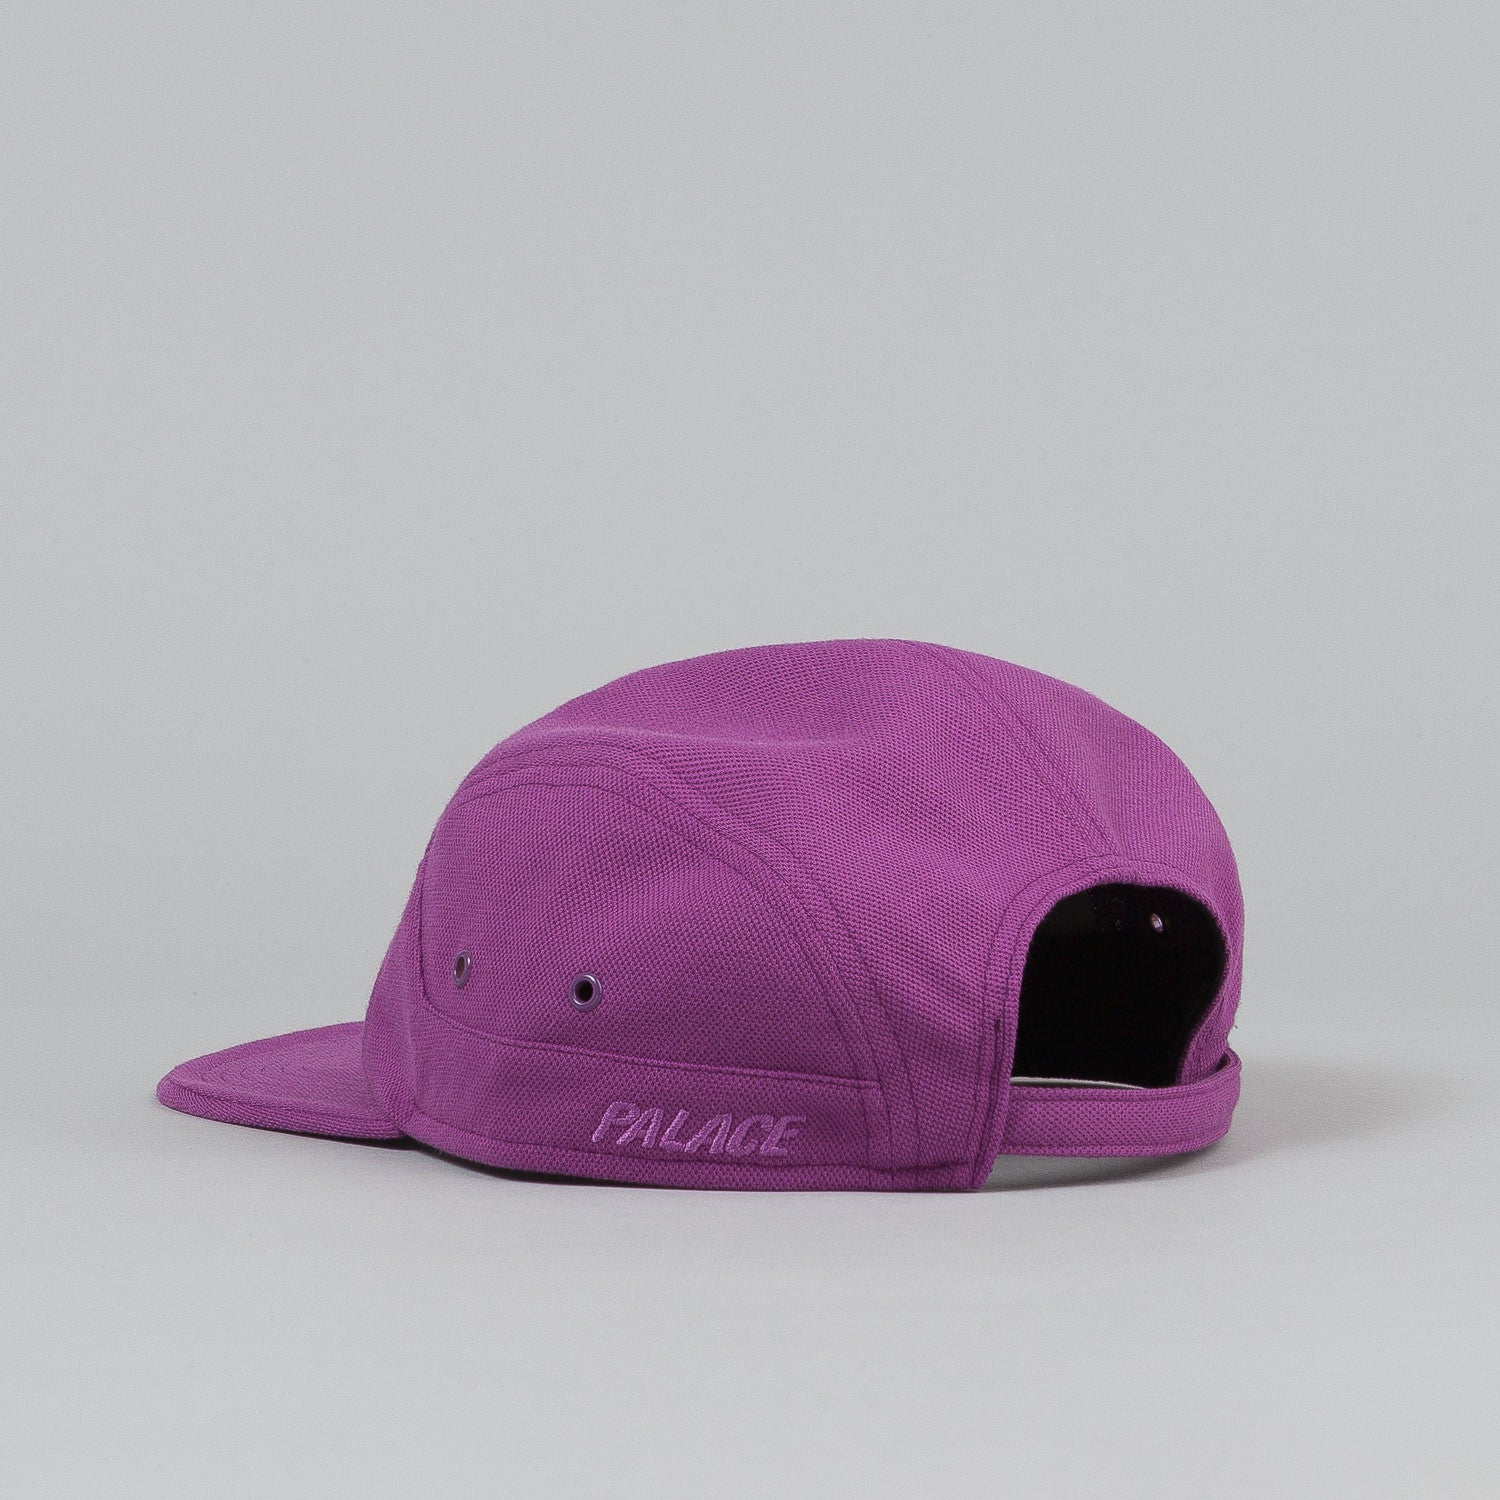 Palace 7 Panel Cap - Purple Pique